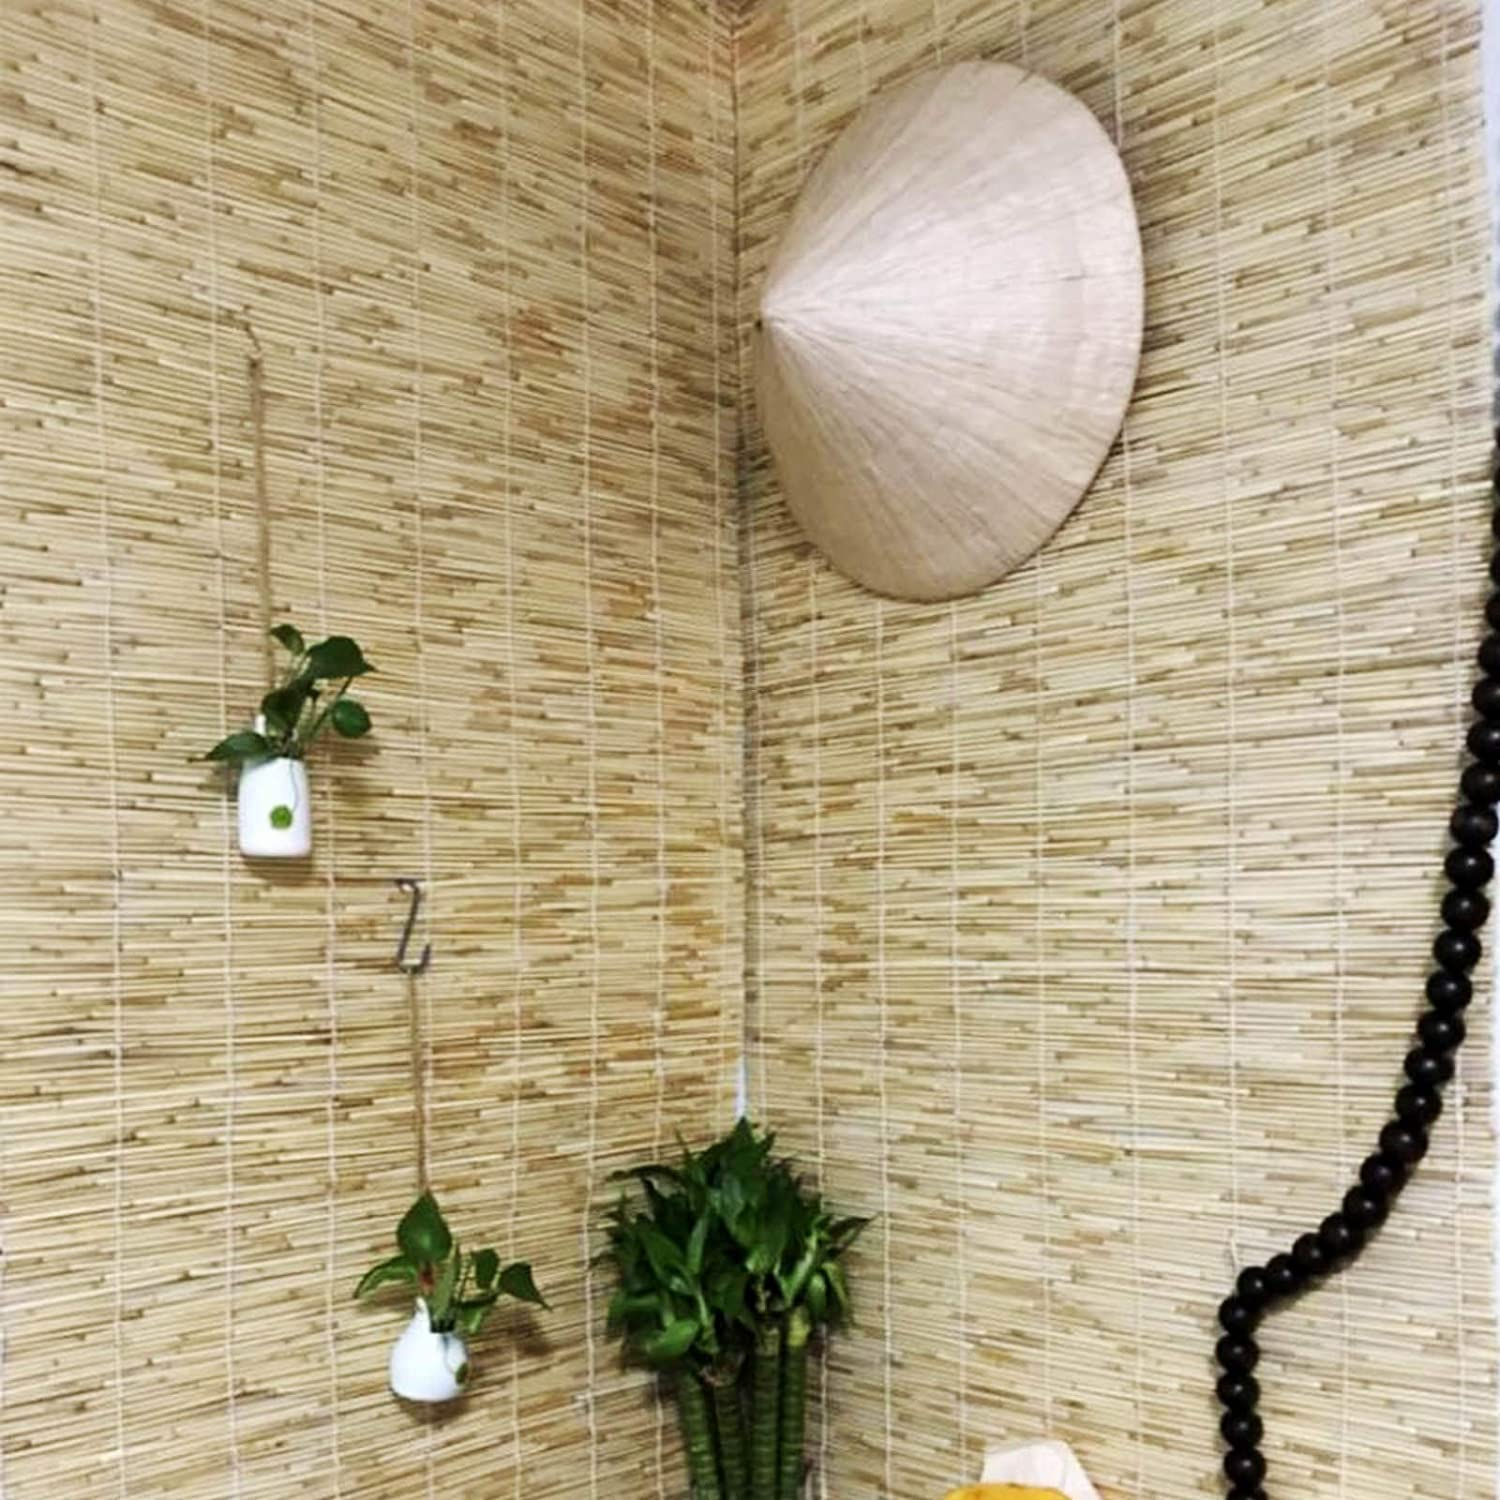 TTBB Roll-up Reed-Shade Straw Shading SALENEW very popular Wate Curtains Max 76% OFF Sunscreen